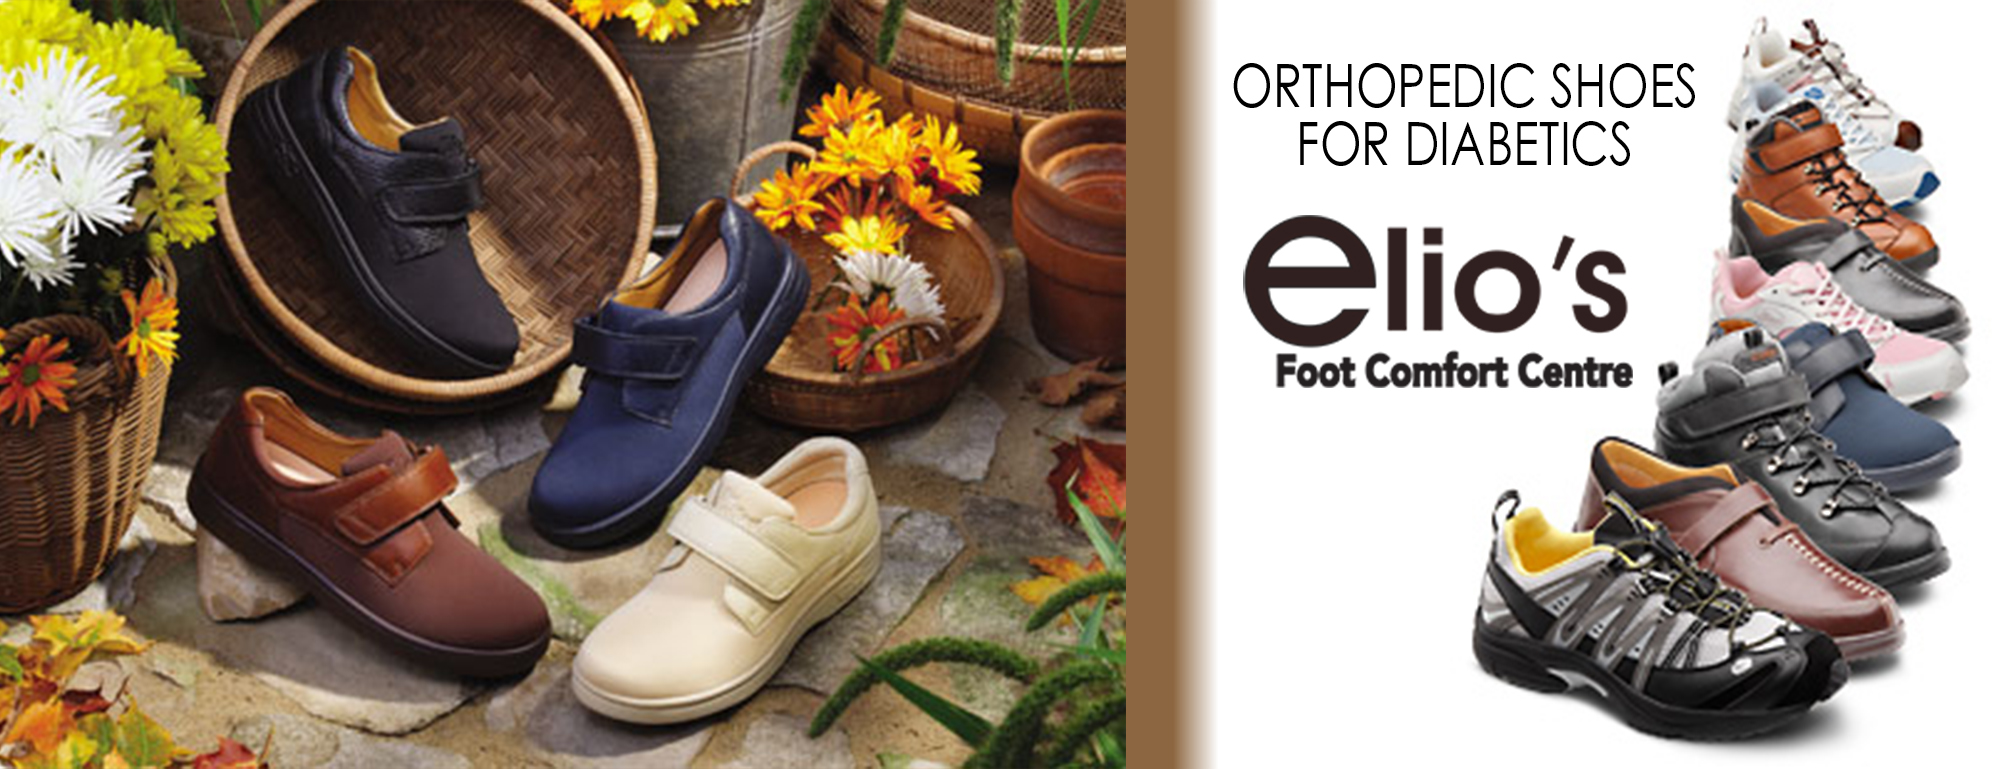 Diabetic Footwear Elio's Foot Comfort